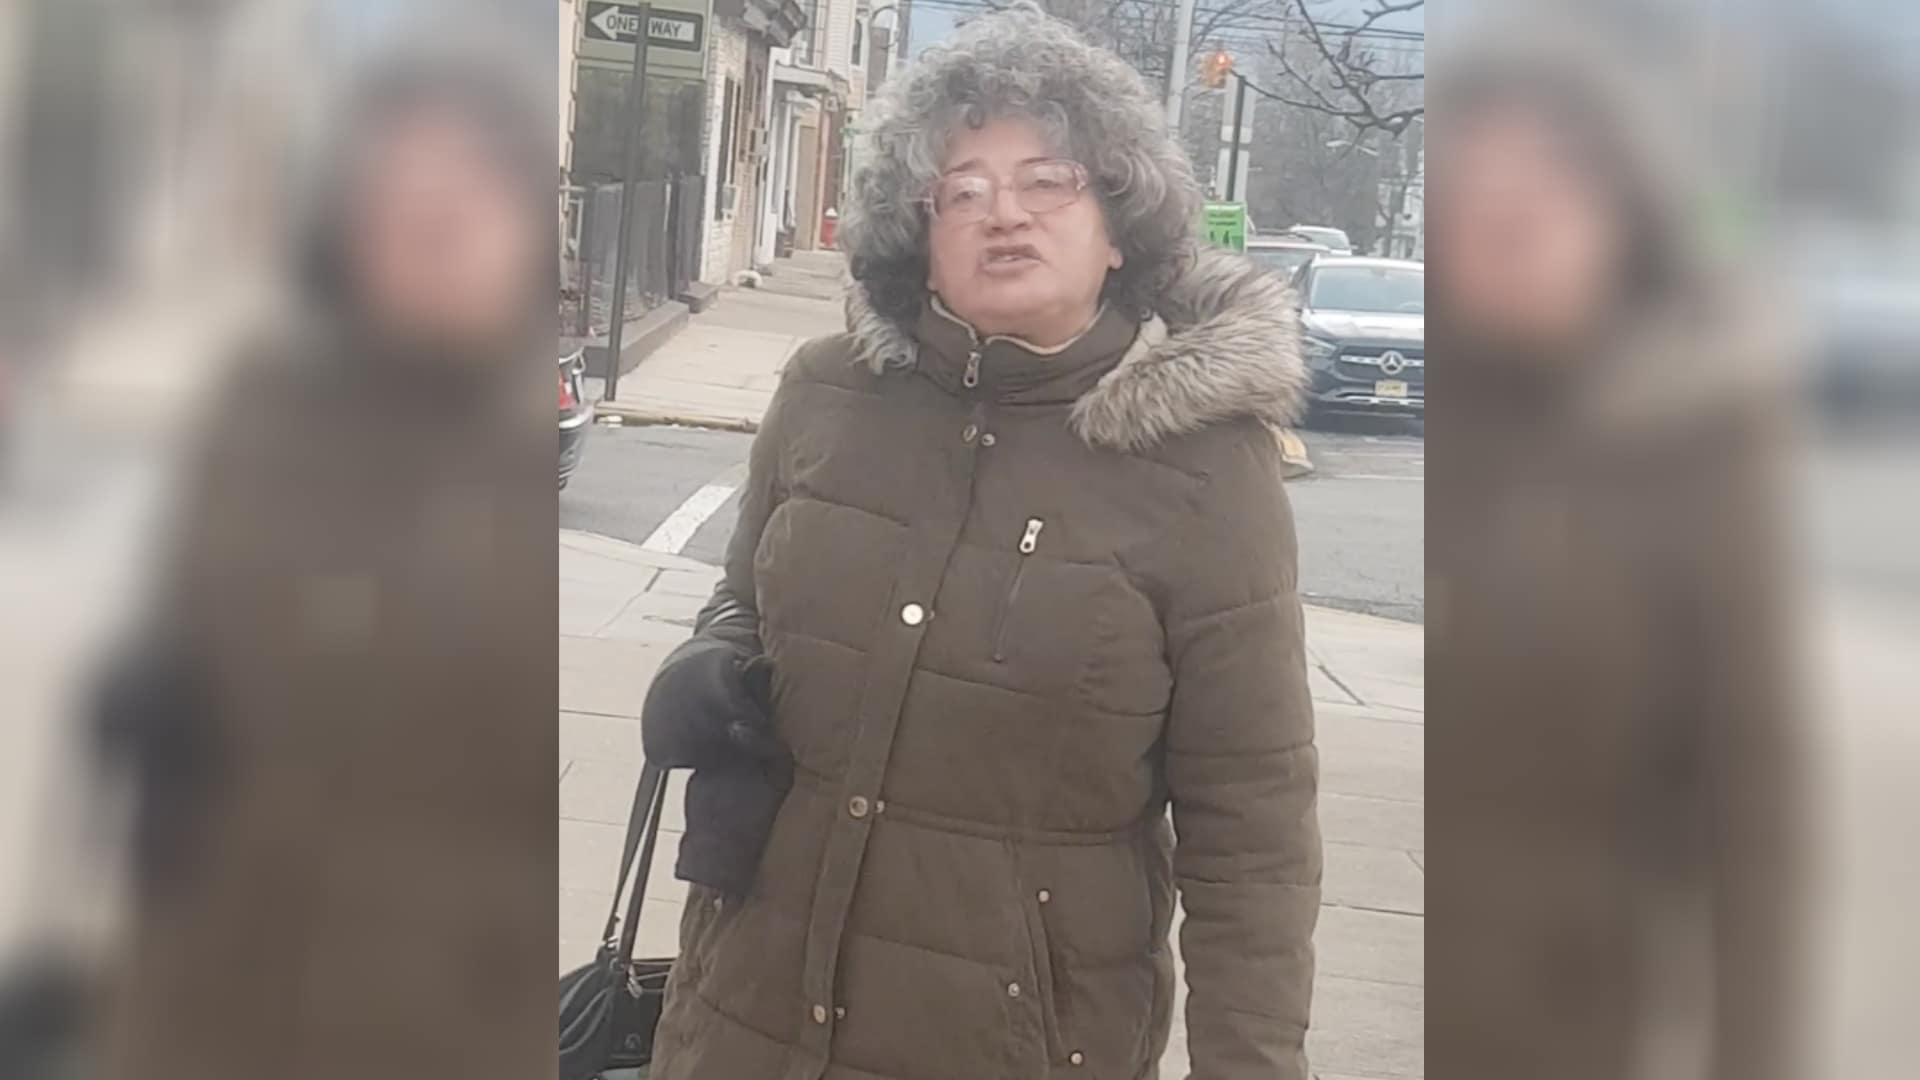 New Jersey 'Karen' arrested after hurling N-word at Black woman in video